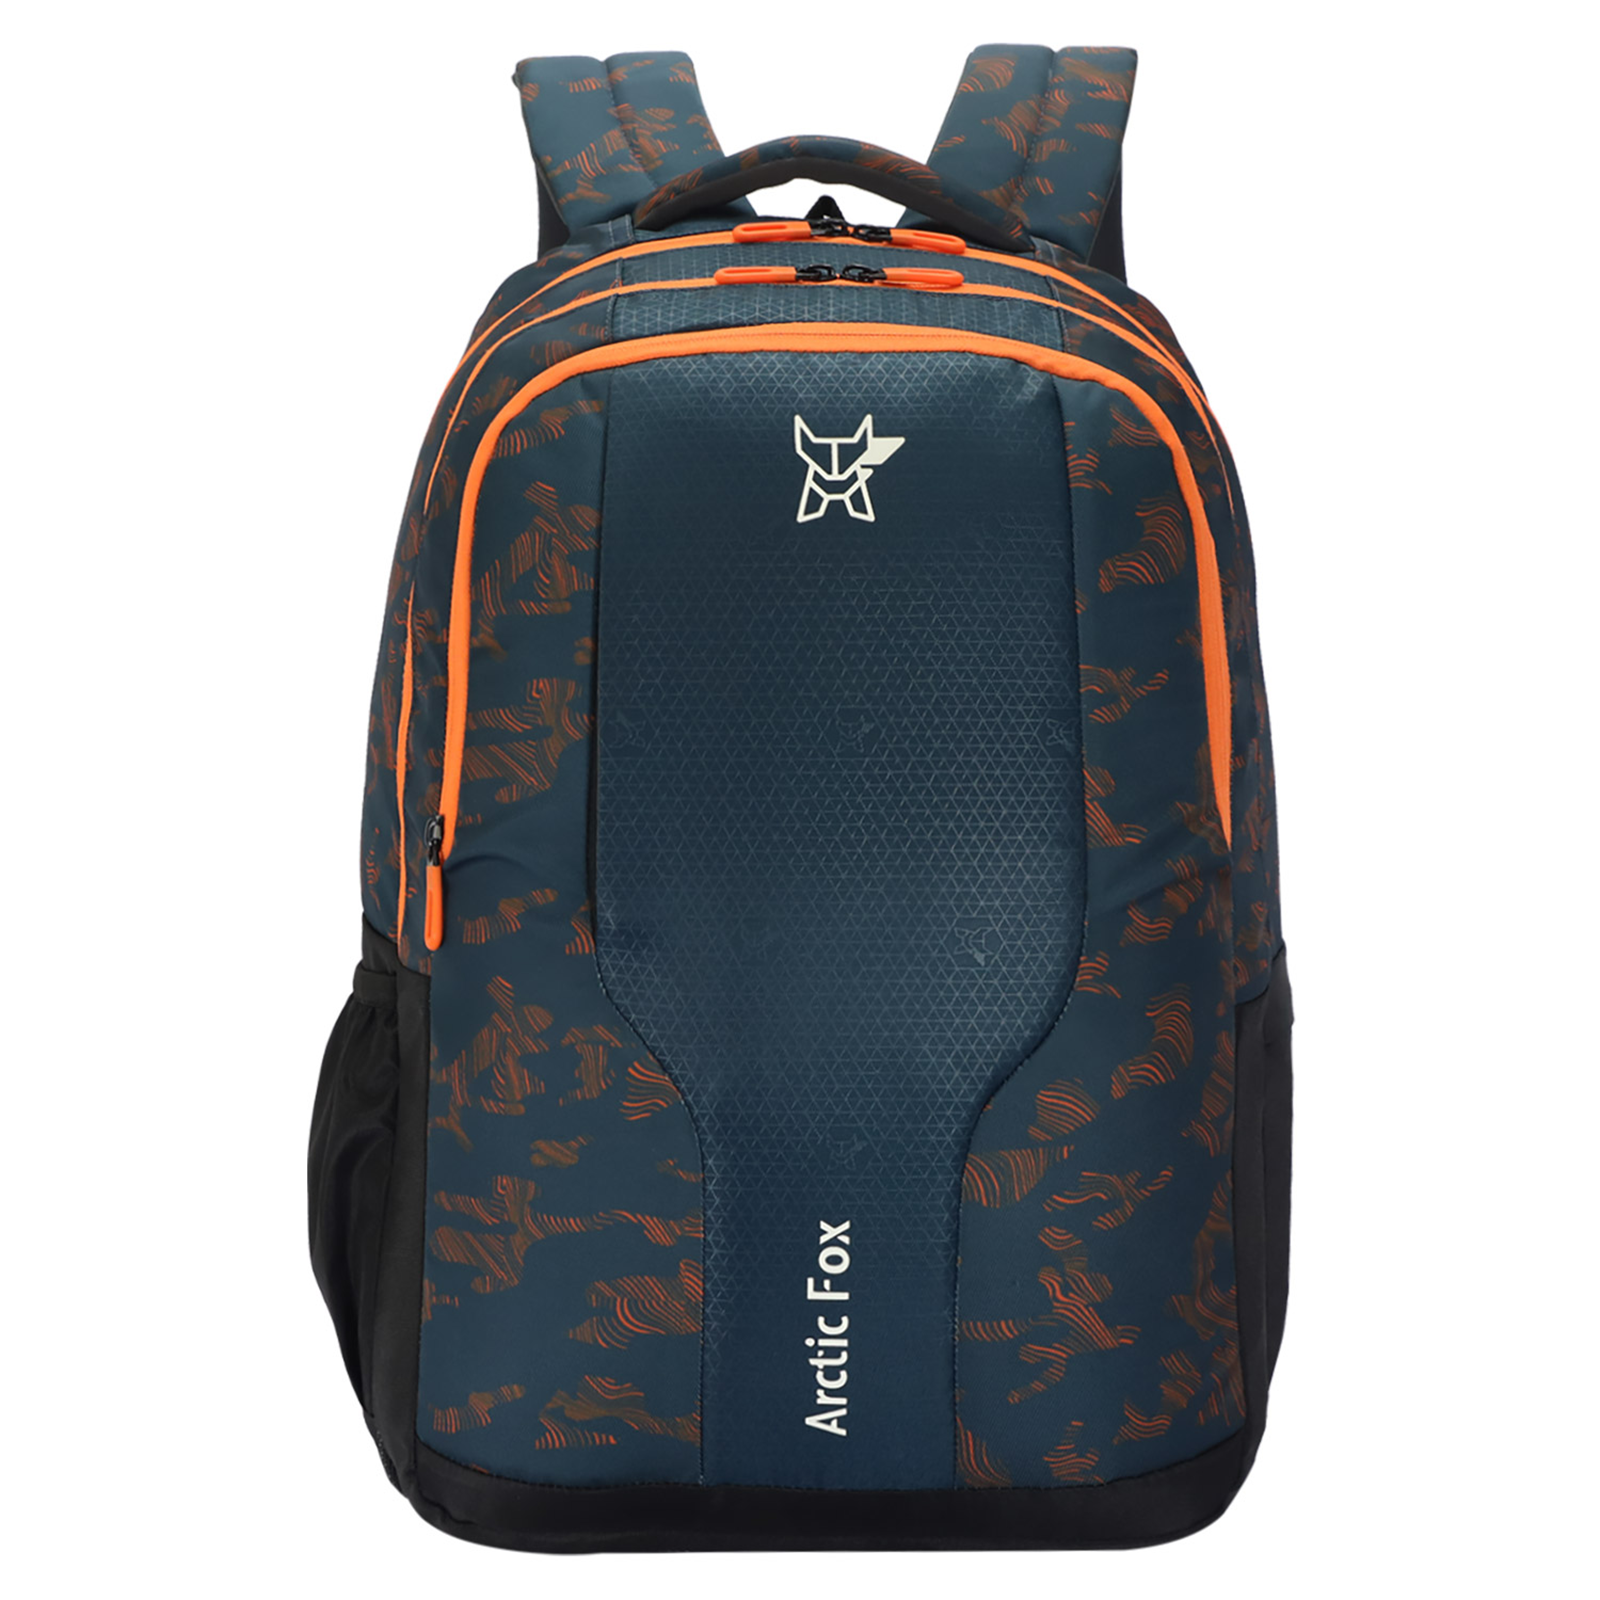 Arctic Fox Tribe 37 Litres PU Coated Polyester Backpack (3 Spacious Compartments, FTEBPKRORON073037, Red Orange)_1